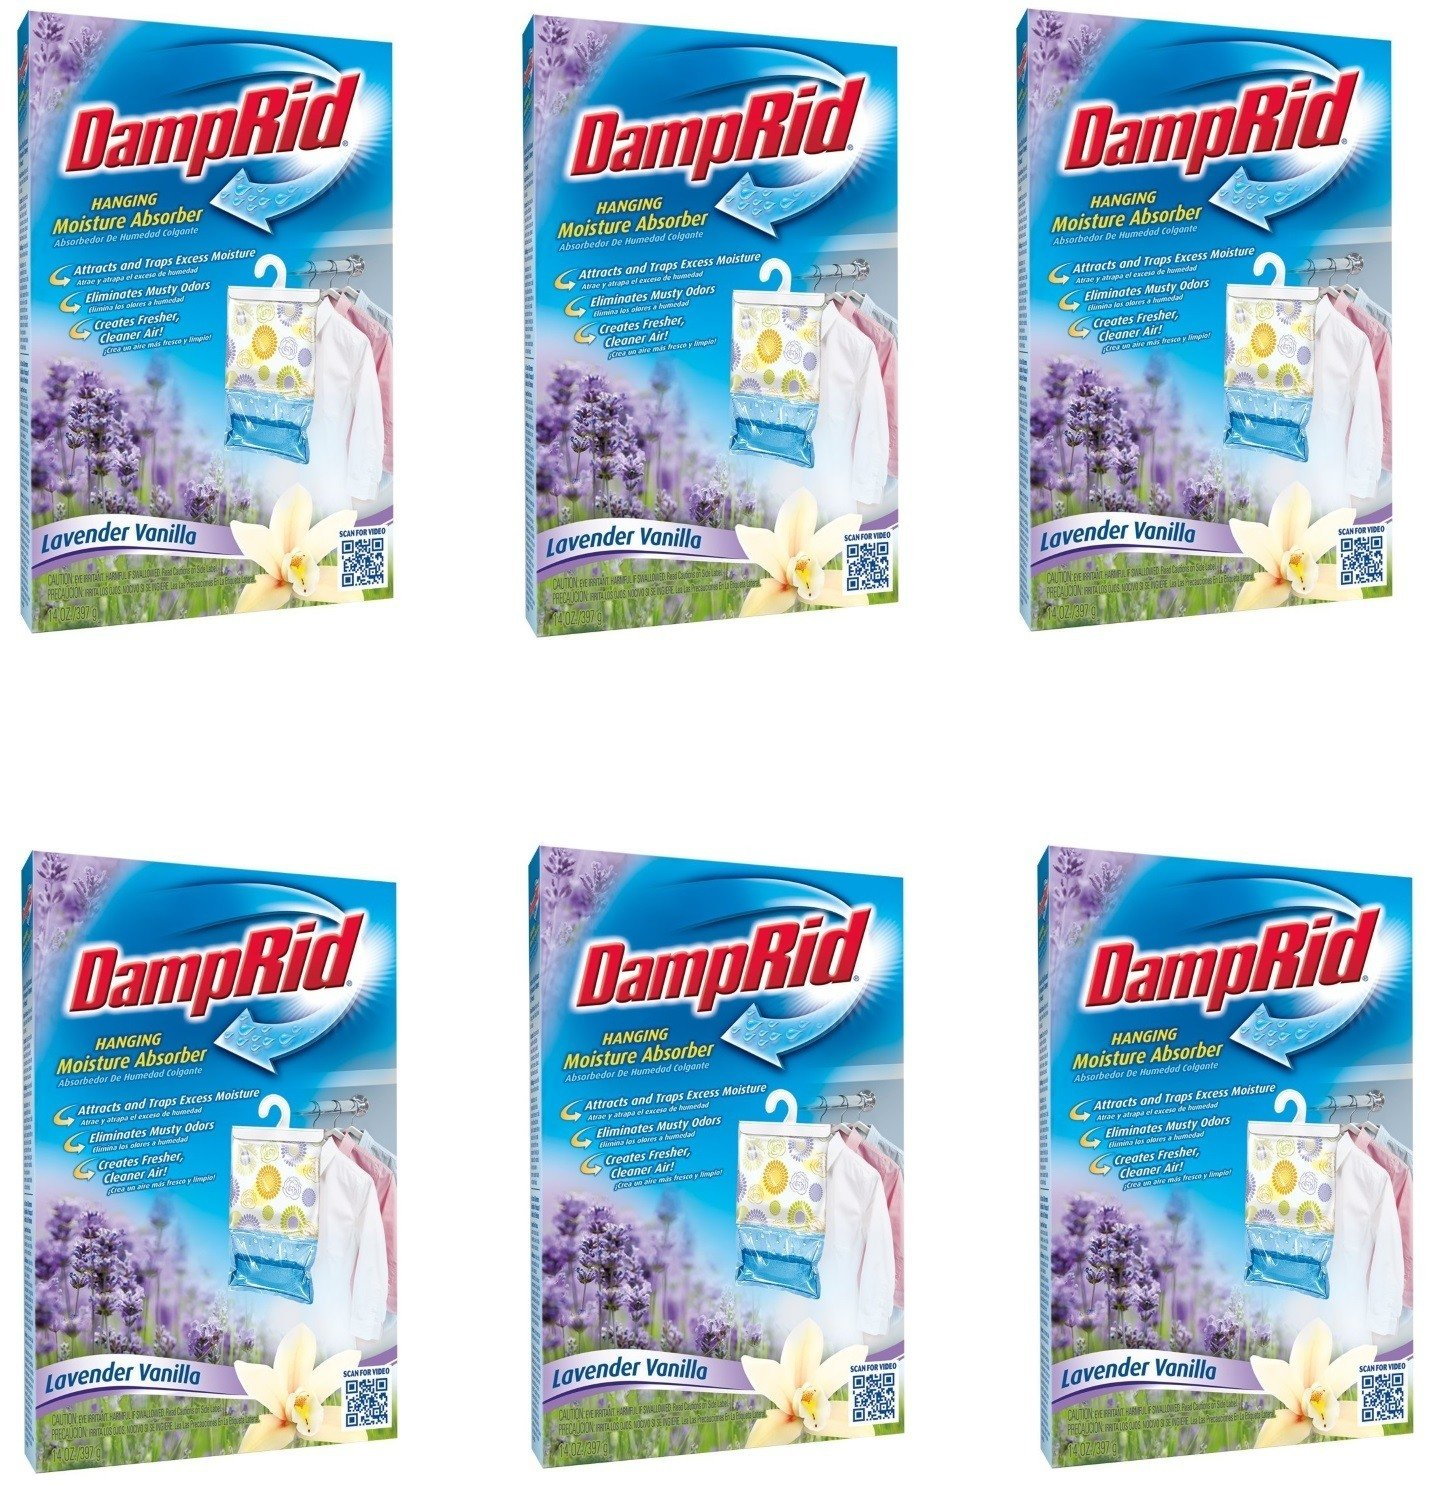 DampRid Hanging Moisture Absorber, Lavender Vanilla Scent (Pack of 6) by WM Barr (Image #1)